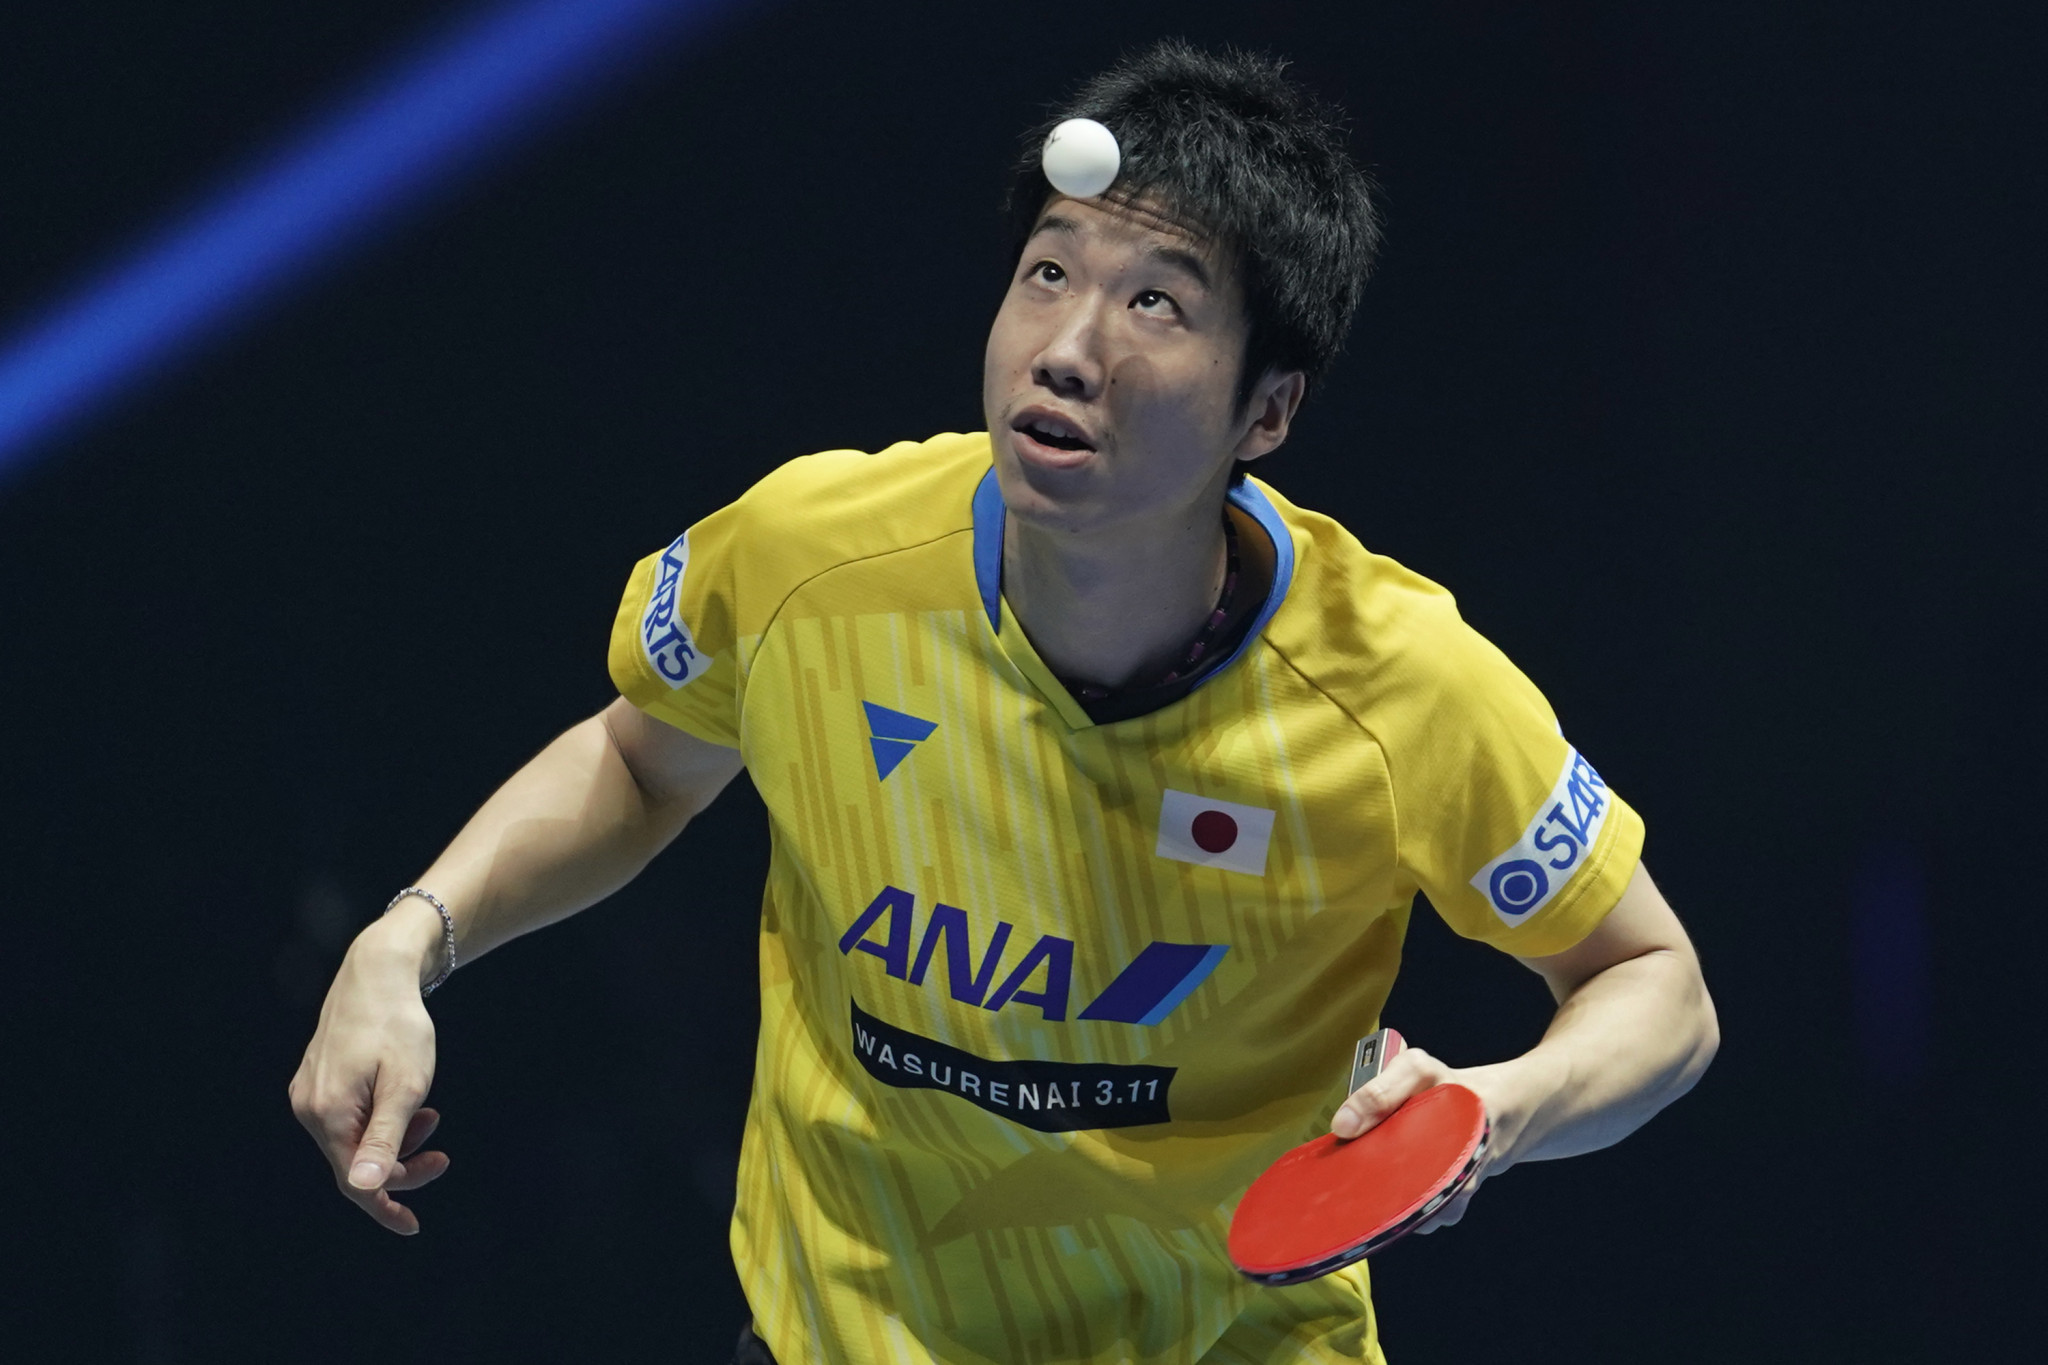 Mizutani reaches fourth Olympics after Japanese table tennis team named for Tokyo 2020